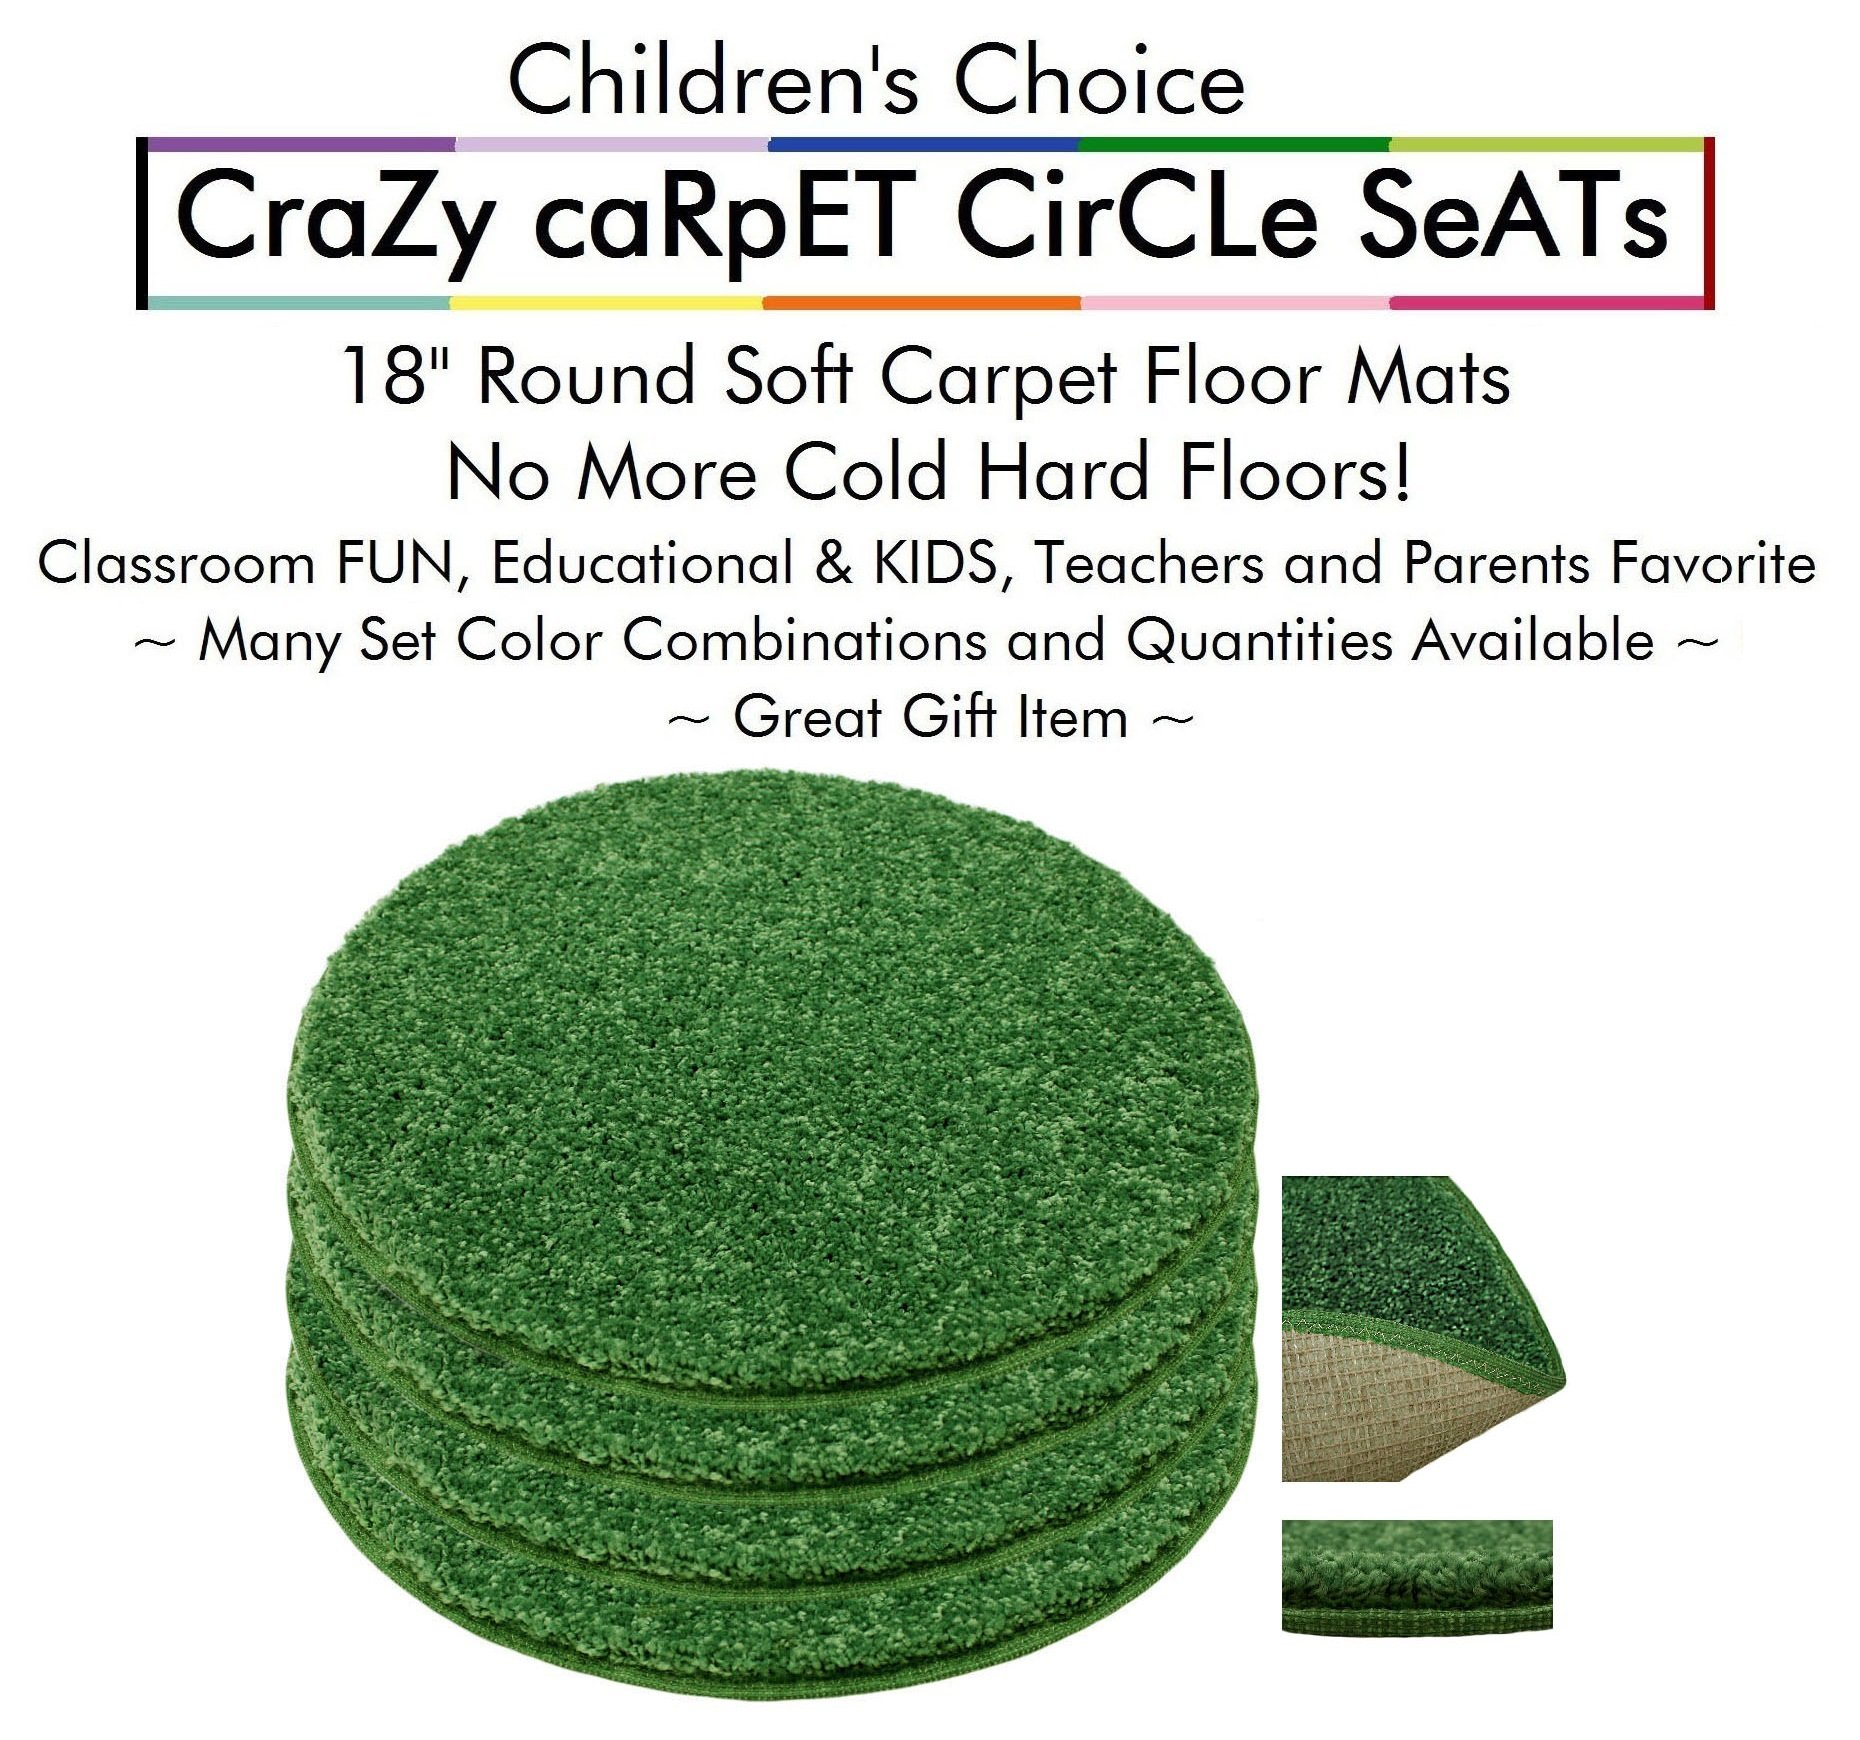 "Set 4 - Shamrock Kids CraZy CarPet CirCle SeaTs 18"" Round Soft Warm Floor Mat - Cushions 